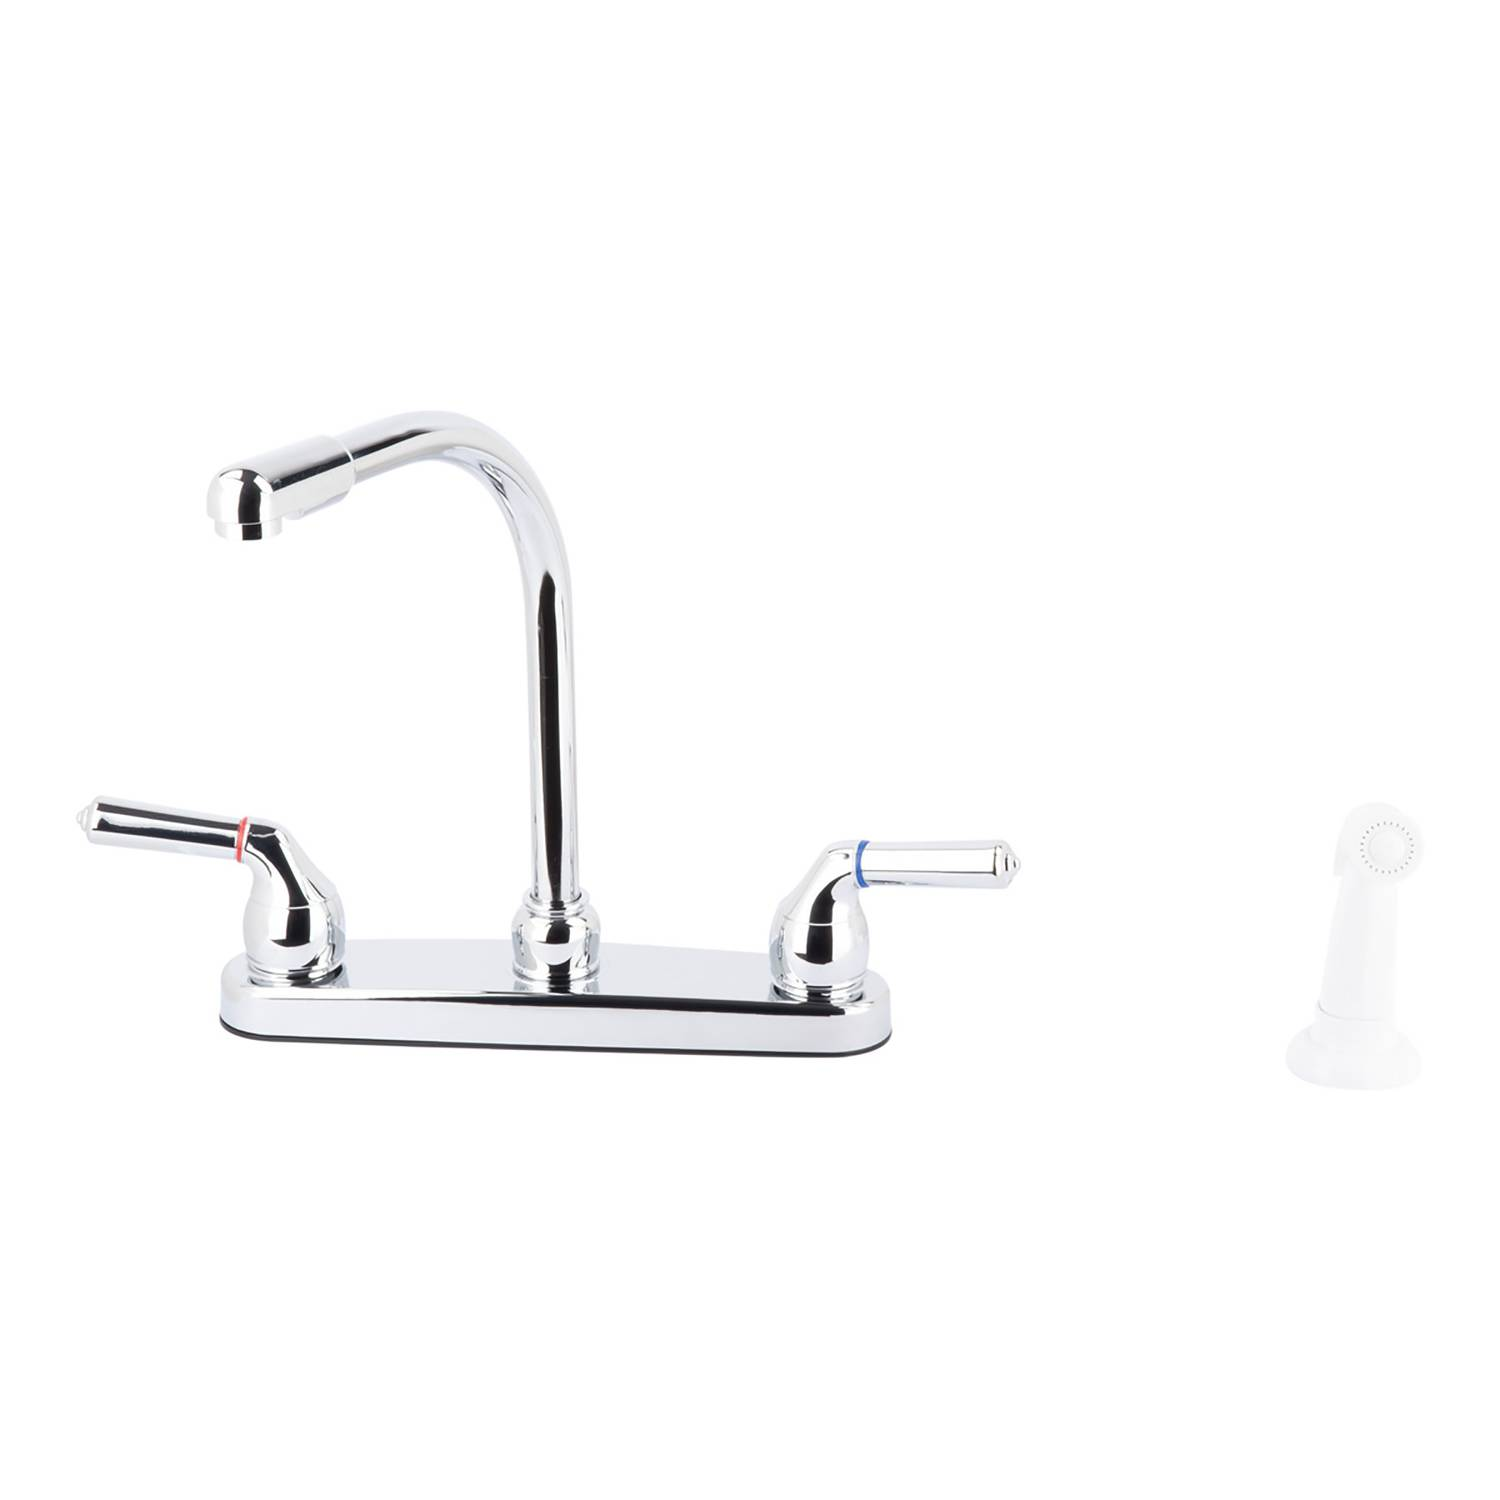 LDR Exquisite Hi-Rise Two Handle Chrome Kitchen Faucet Side Sprayer Included